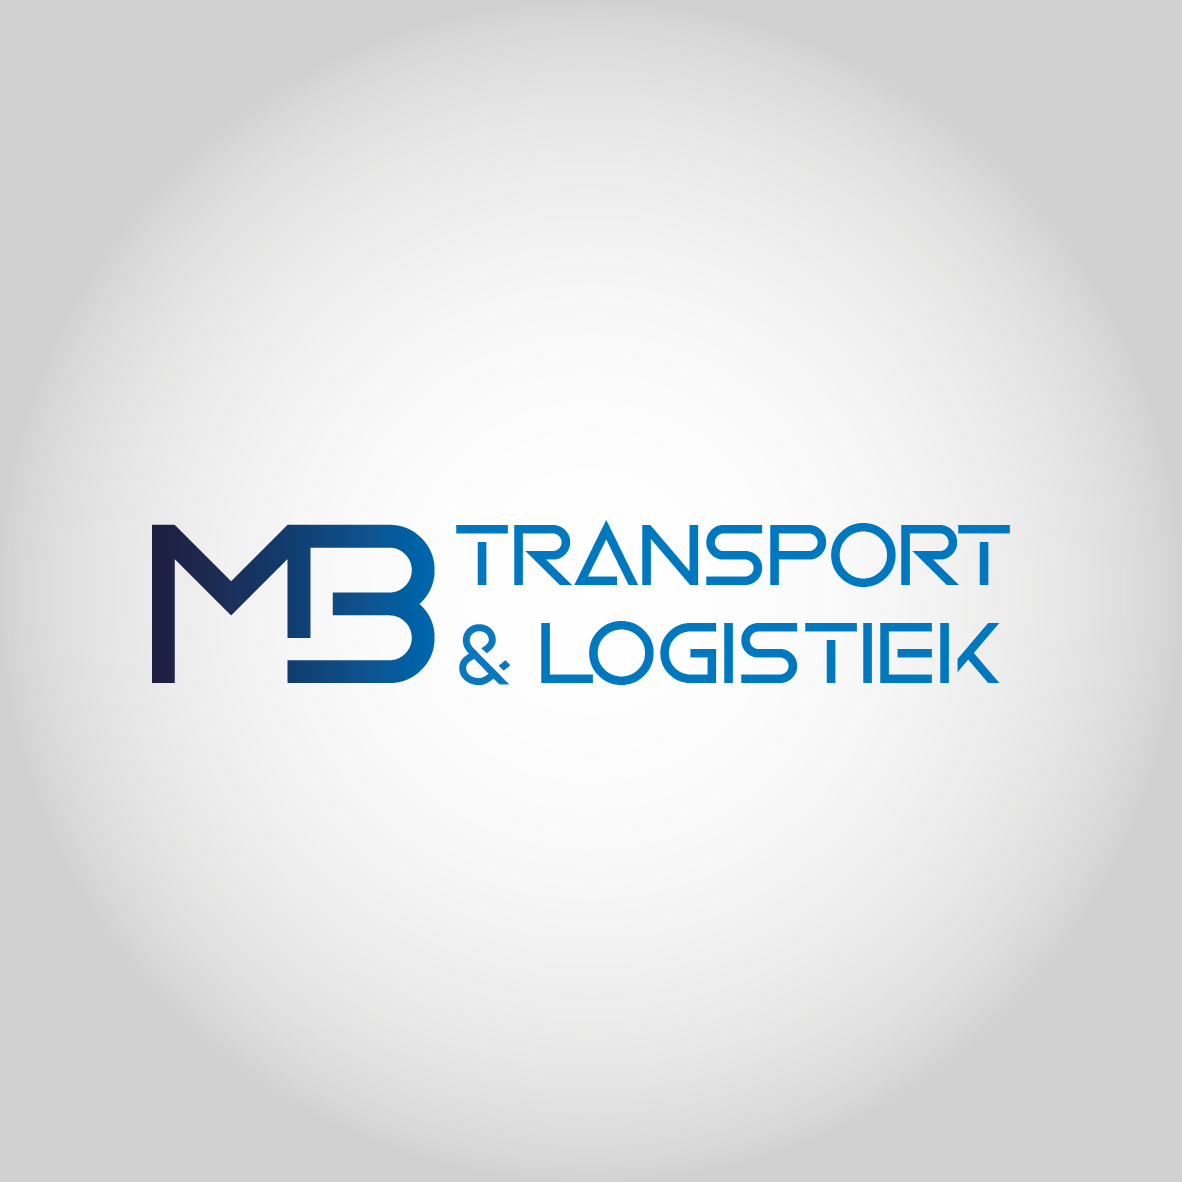 Mike Bode Transport & Logistiek_Tekengebied 1